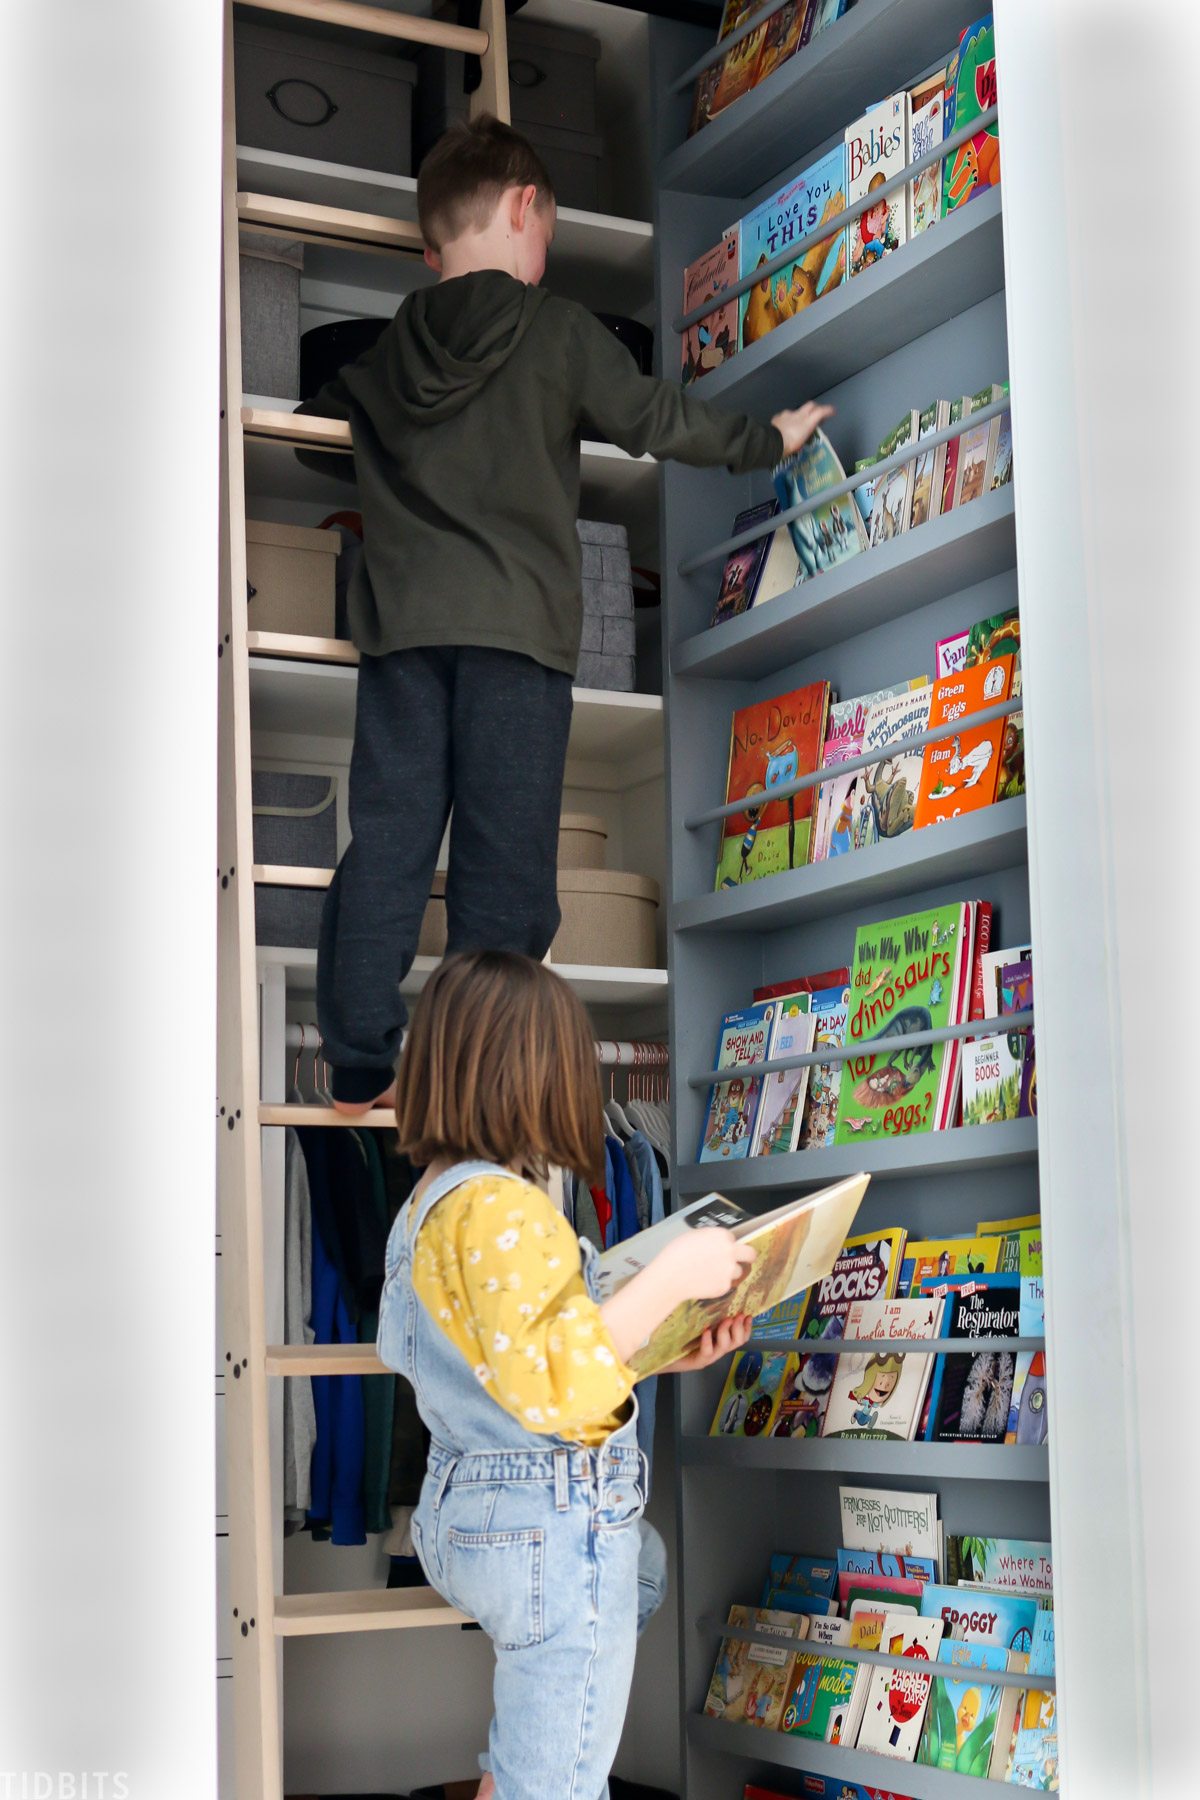 young boy standing on ladder and a little girl standing nearby holding a book